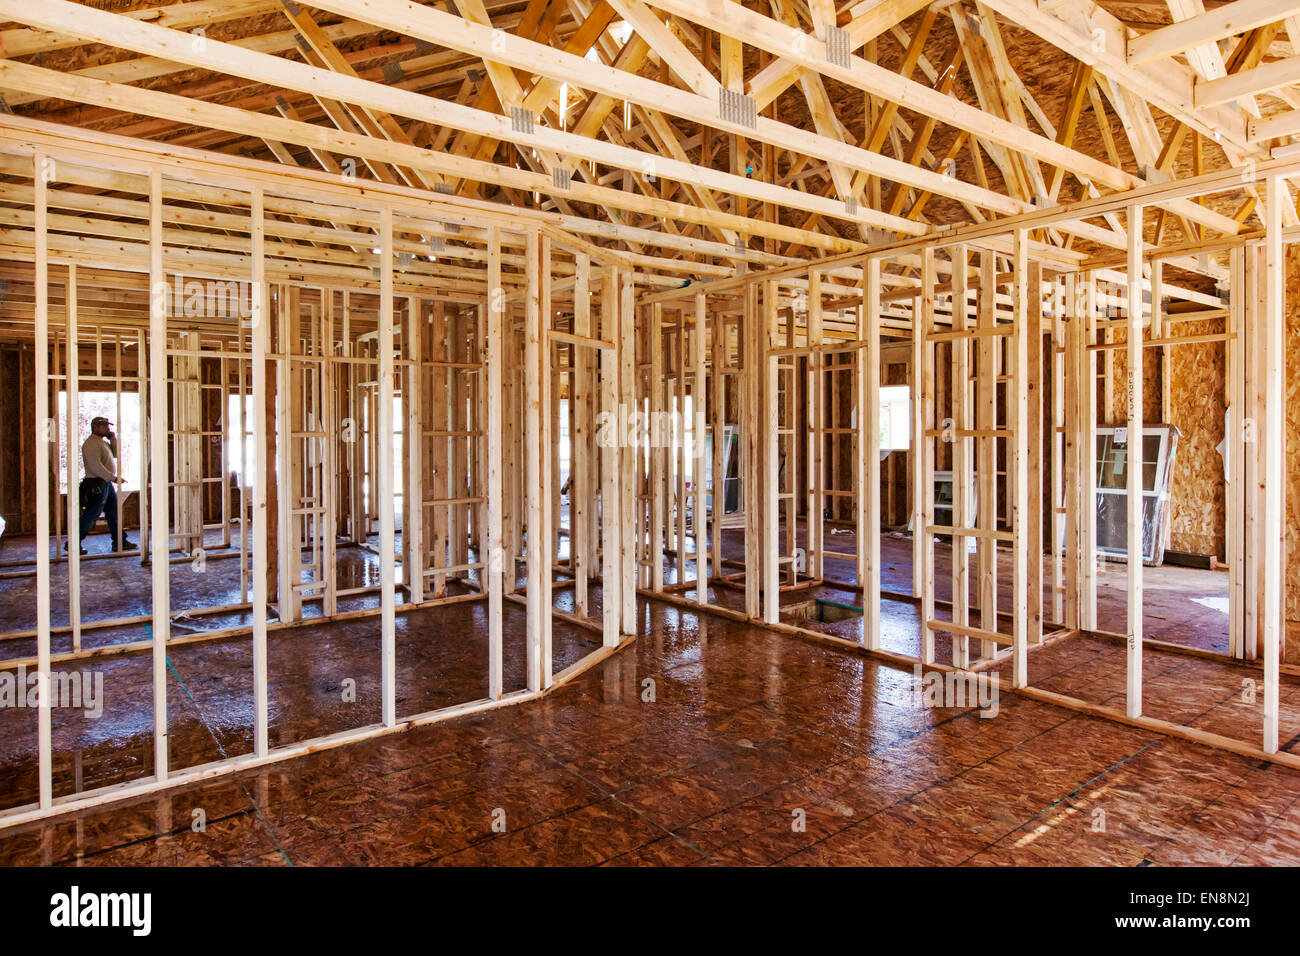 Interior Wall Framing Construction Of A Craftsman Style Residential Stock Photo Royalty Free